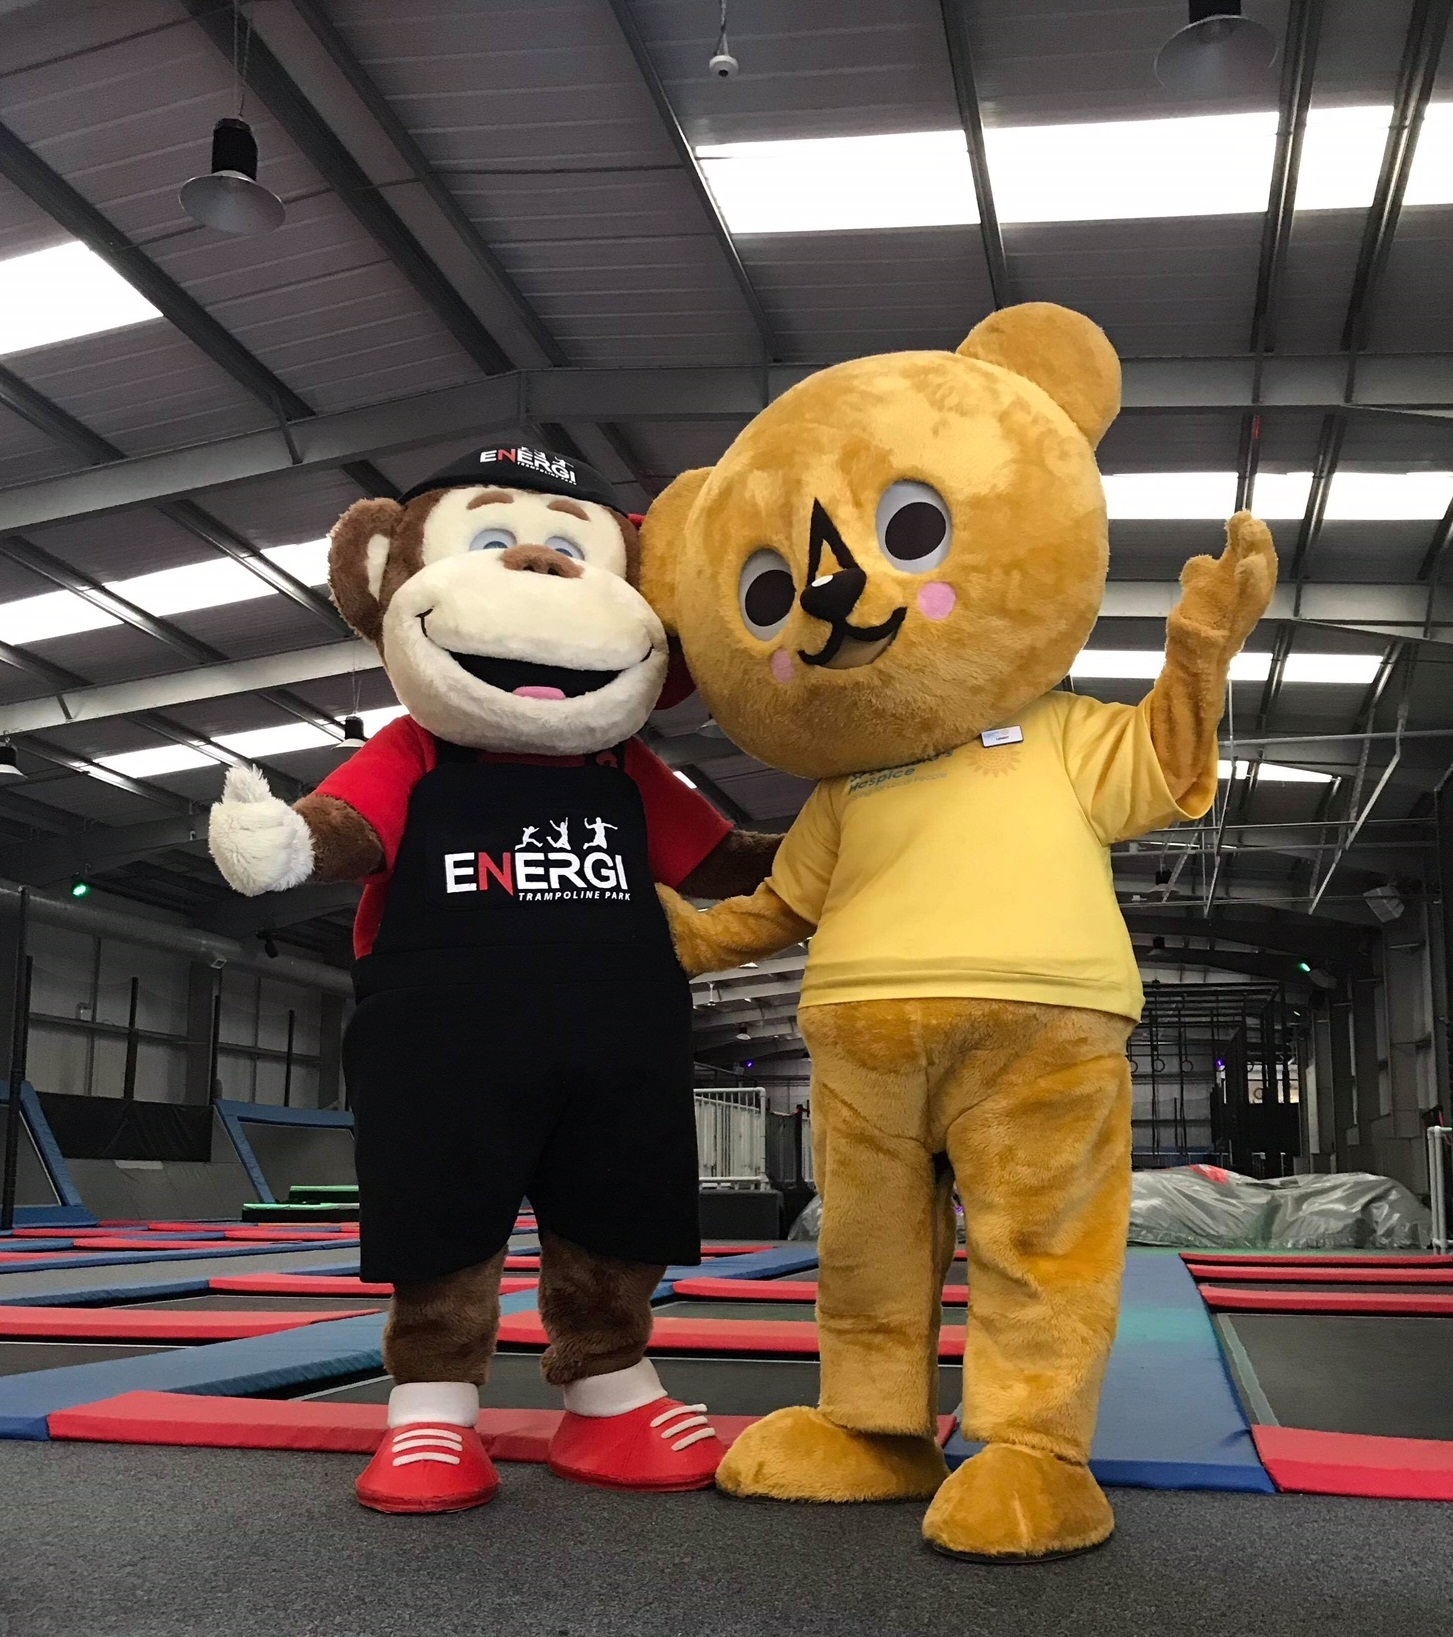 Enzo the Energi mascot with Lenny Bear the hospice mascot at Energi Trampoline Park